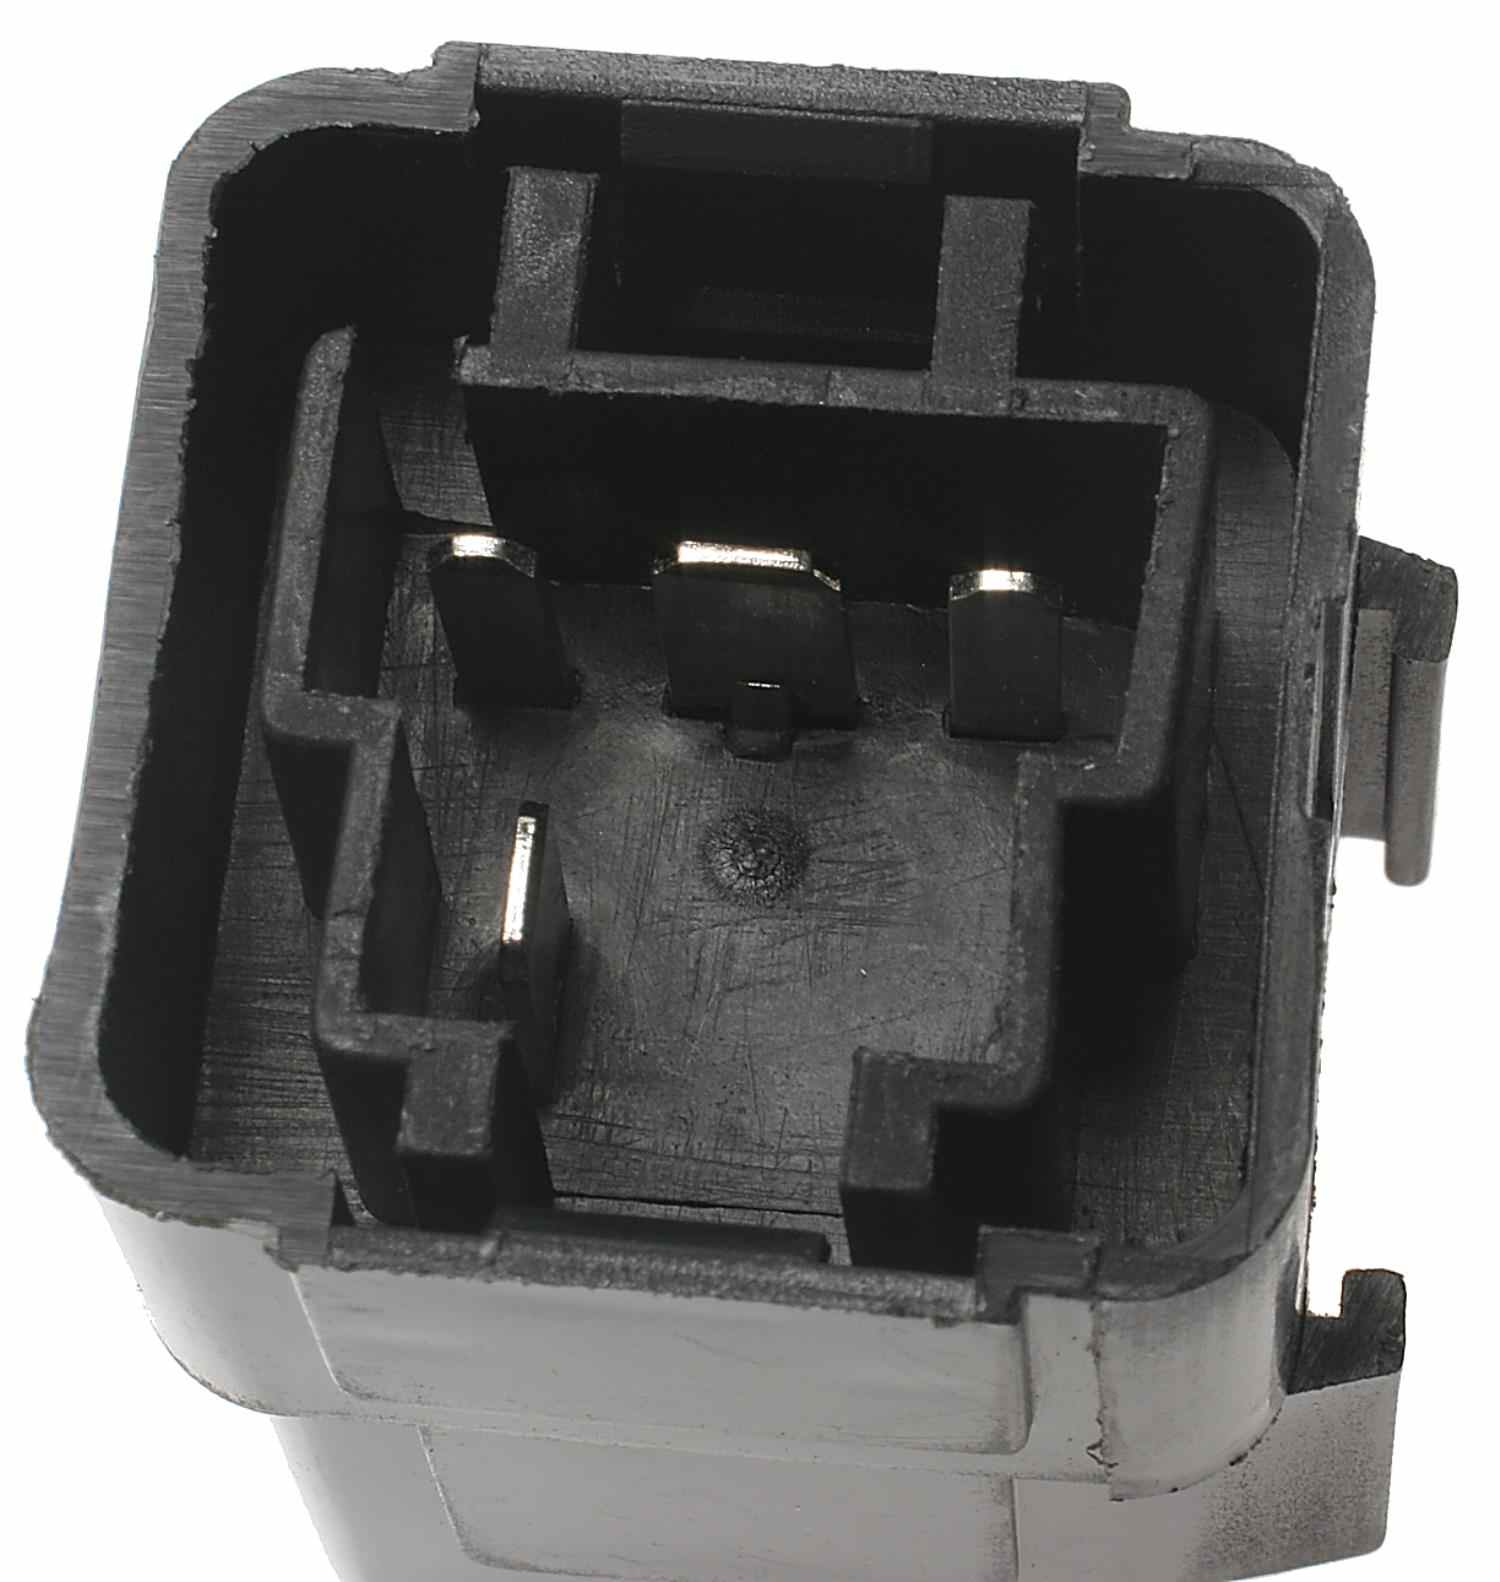 ACDELCO PROFESSIONAL CANADA - Throttle Control Relay - DCH 15-81090